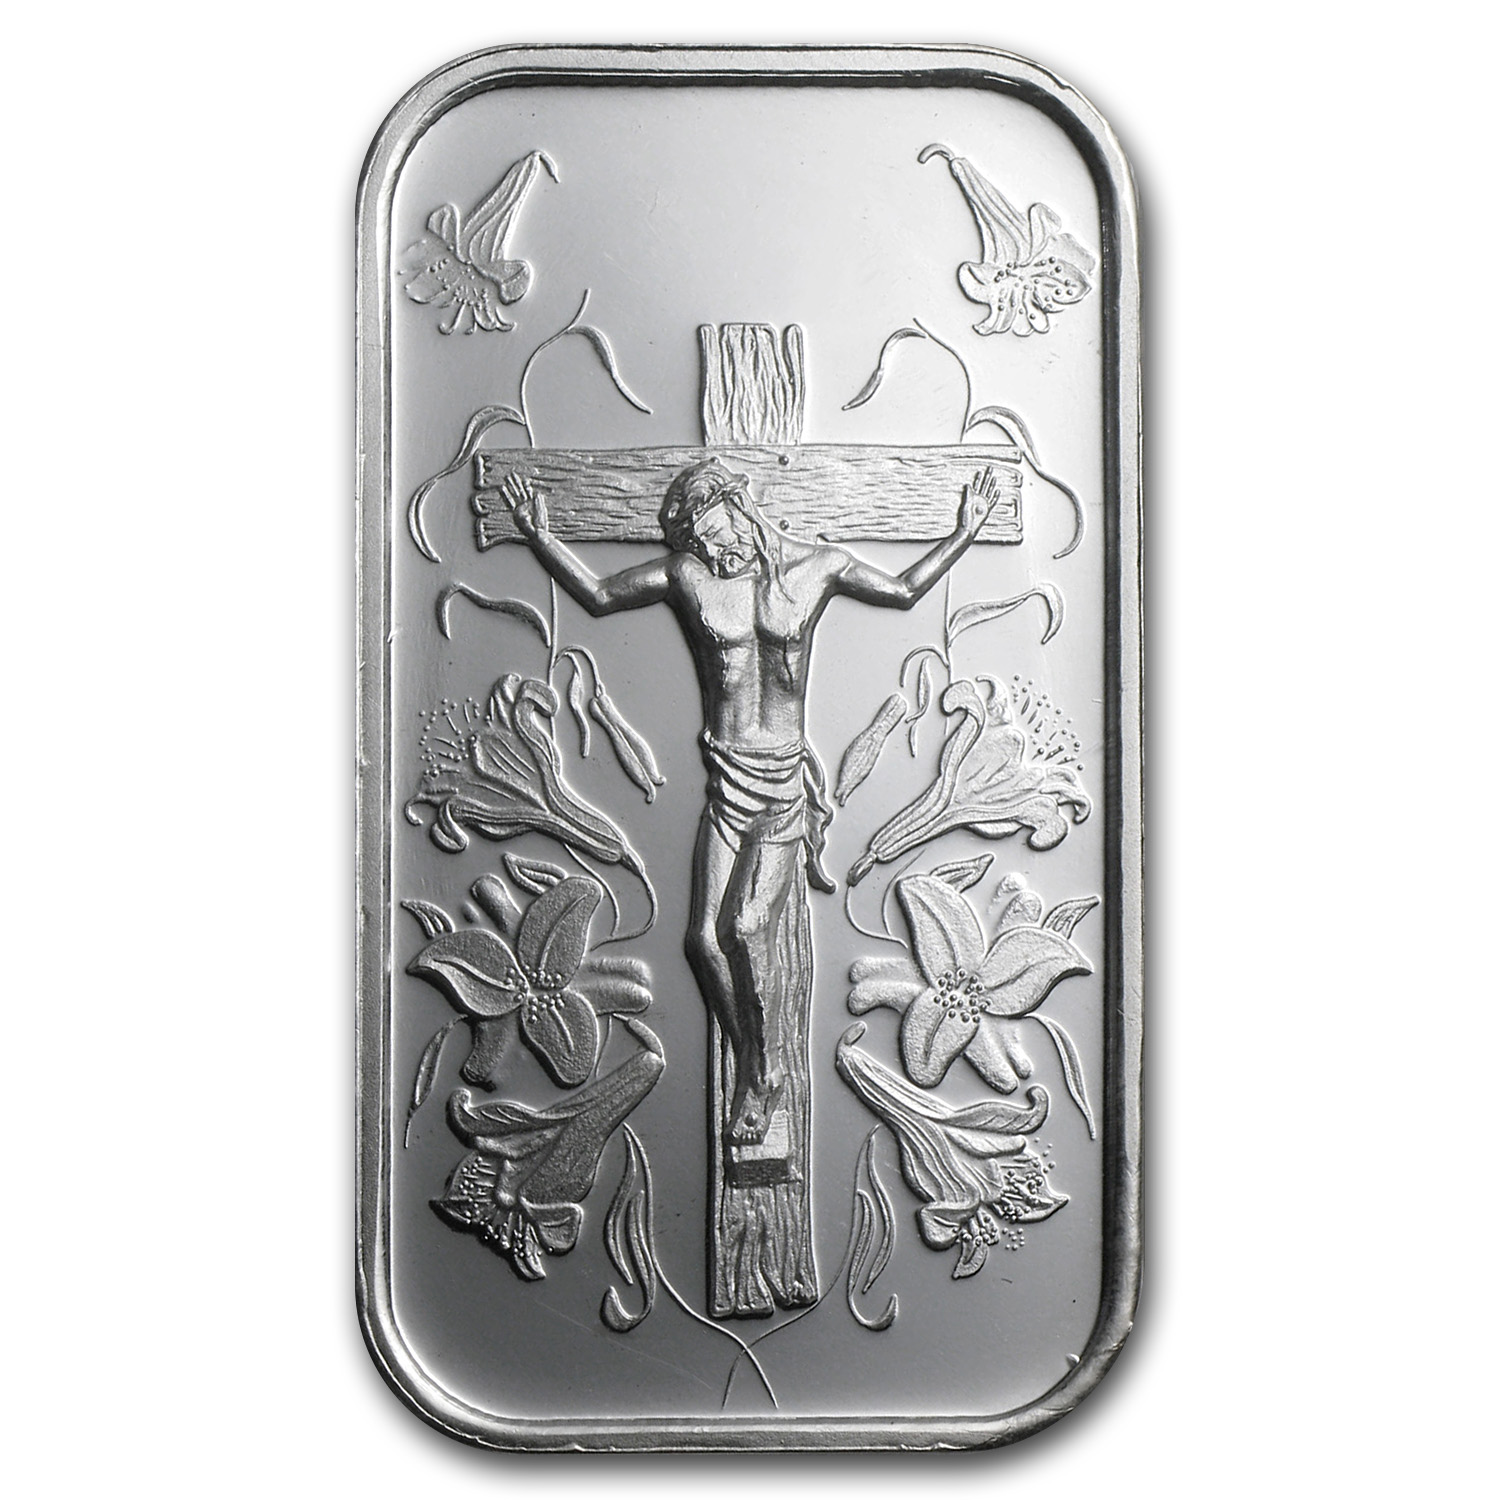 1 oz Silver Bar - Jesus (w/Gift Box & Capsule)